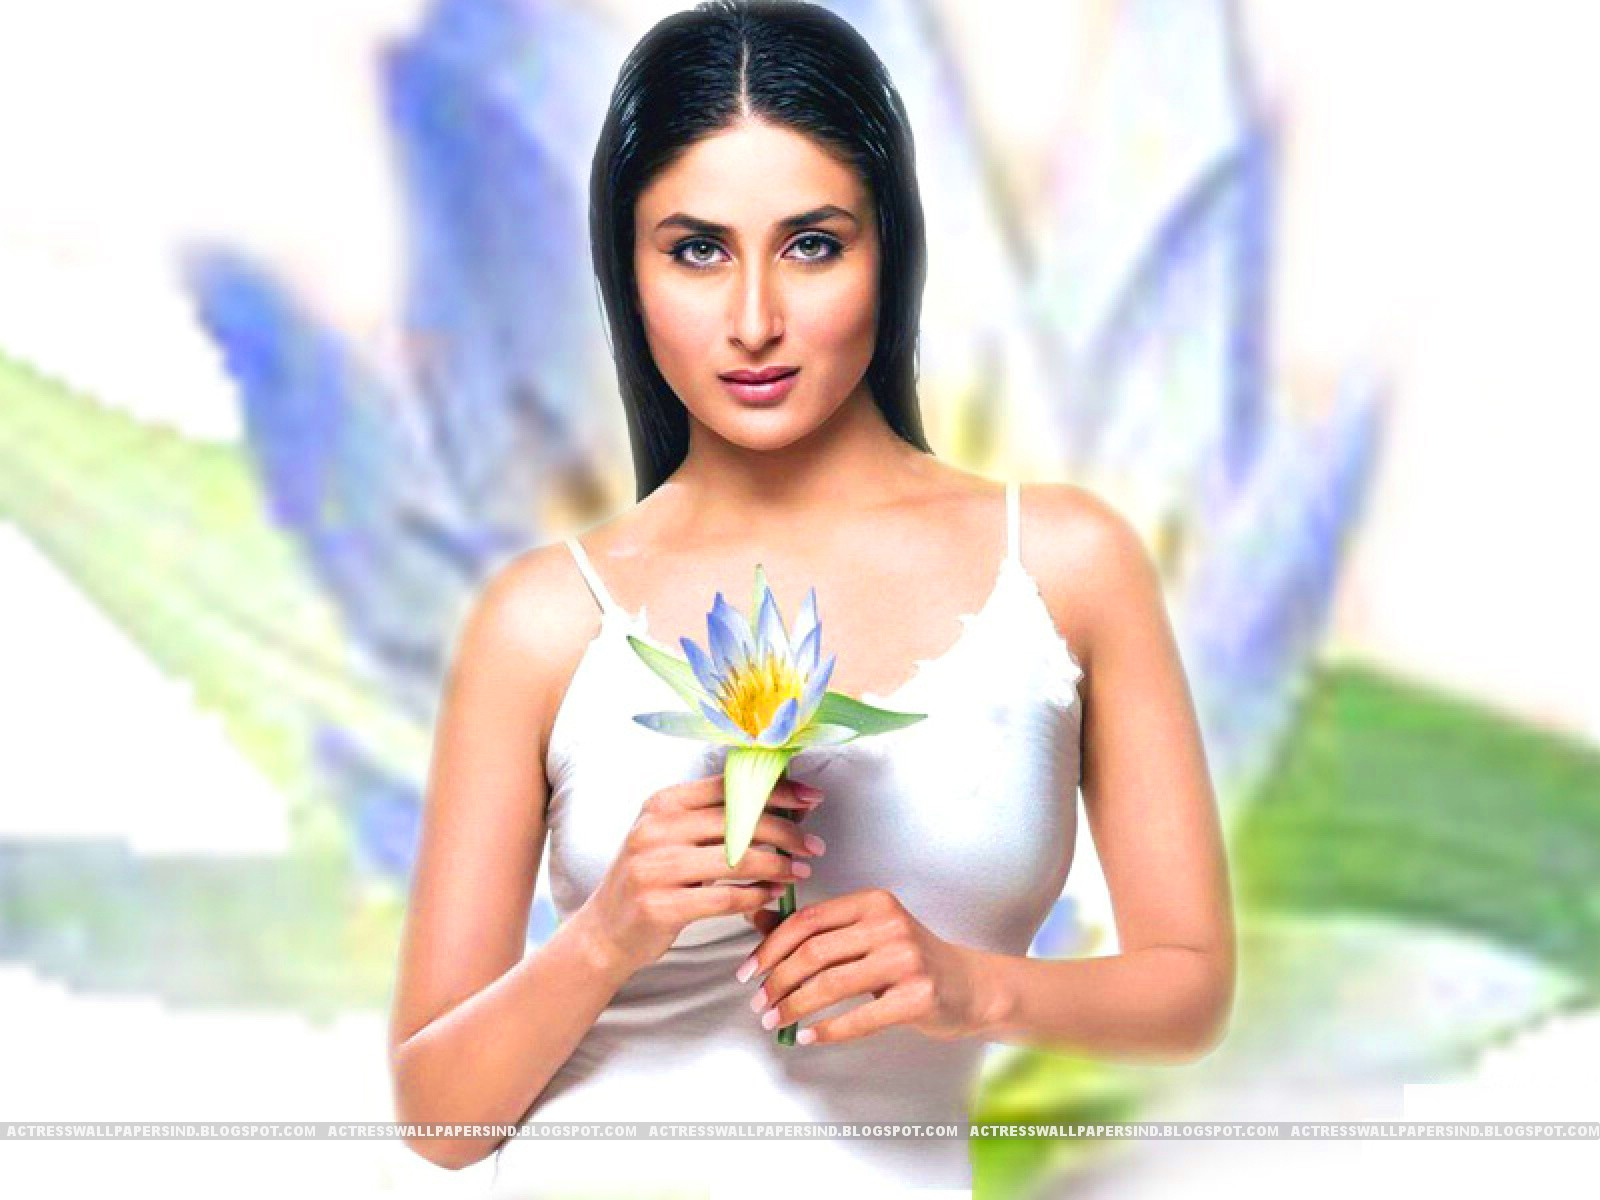 Kareena Kapoor Sexy Photo Hd Shoot Full Gallery - A Wind-7223